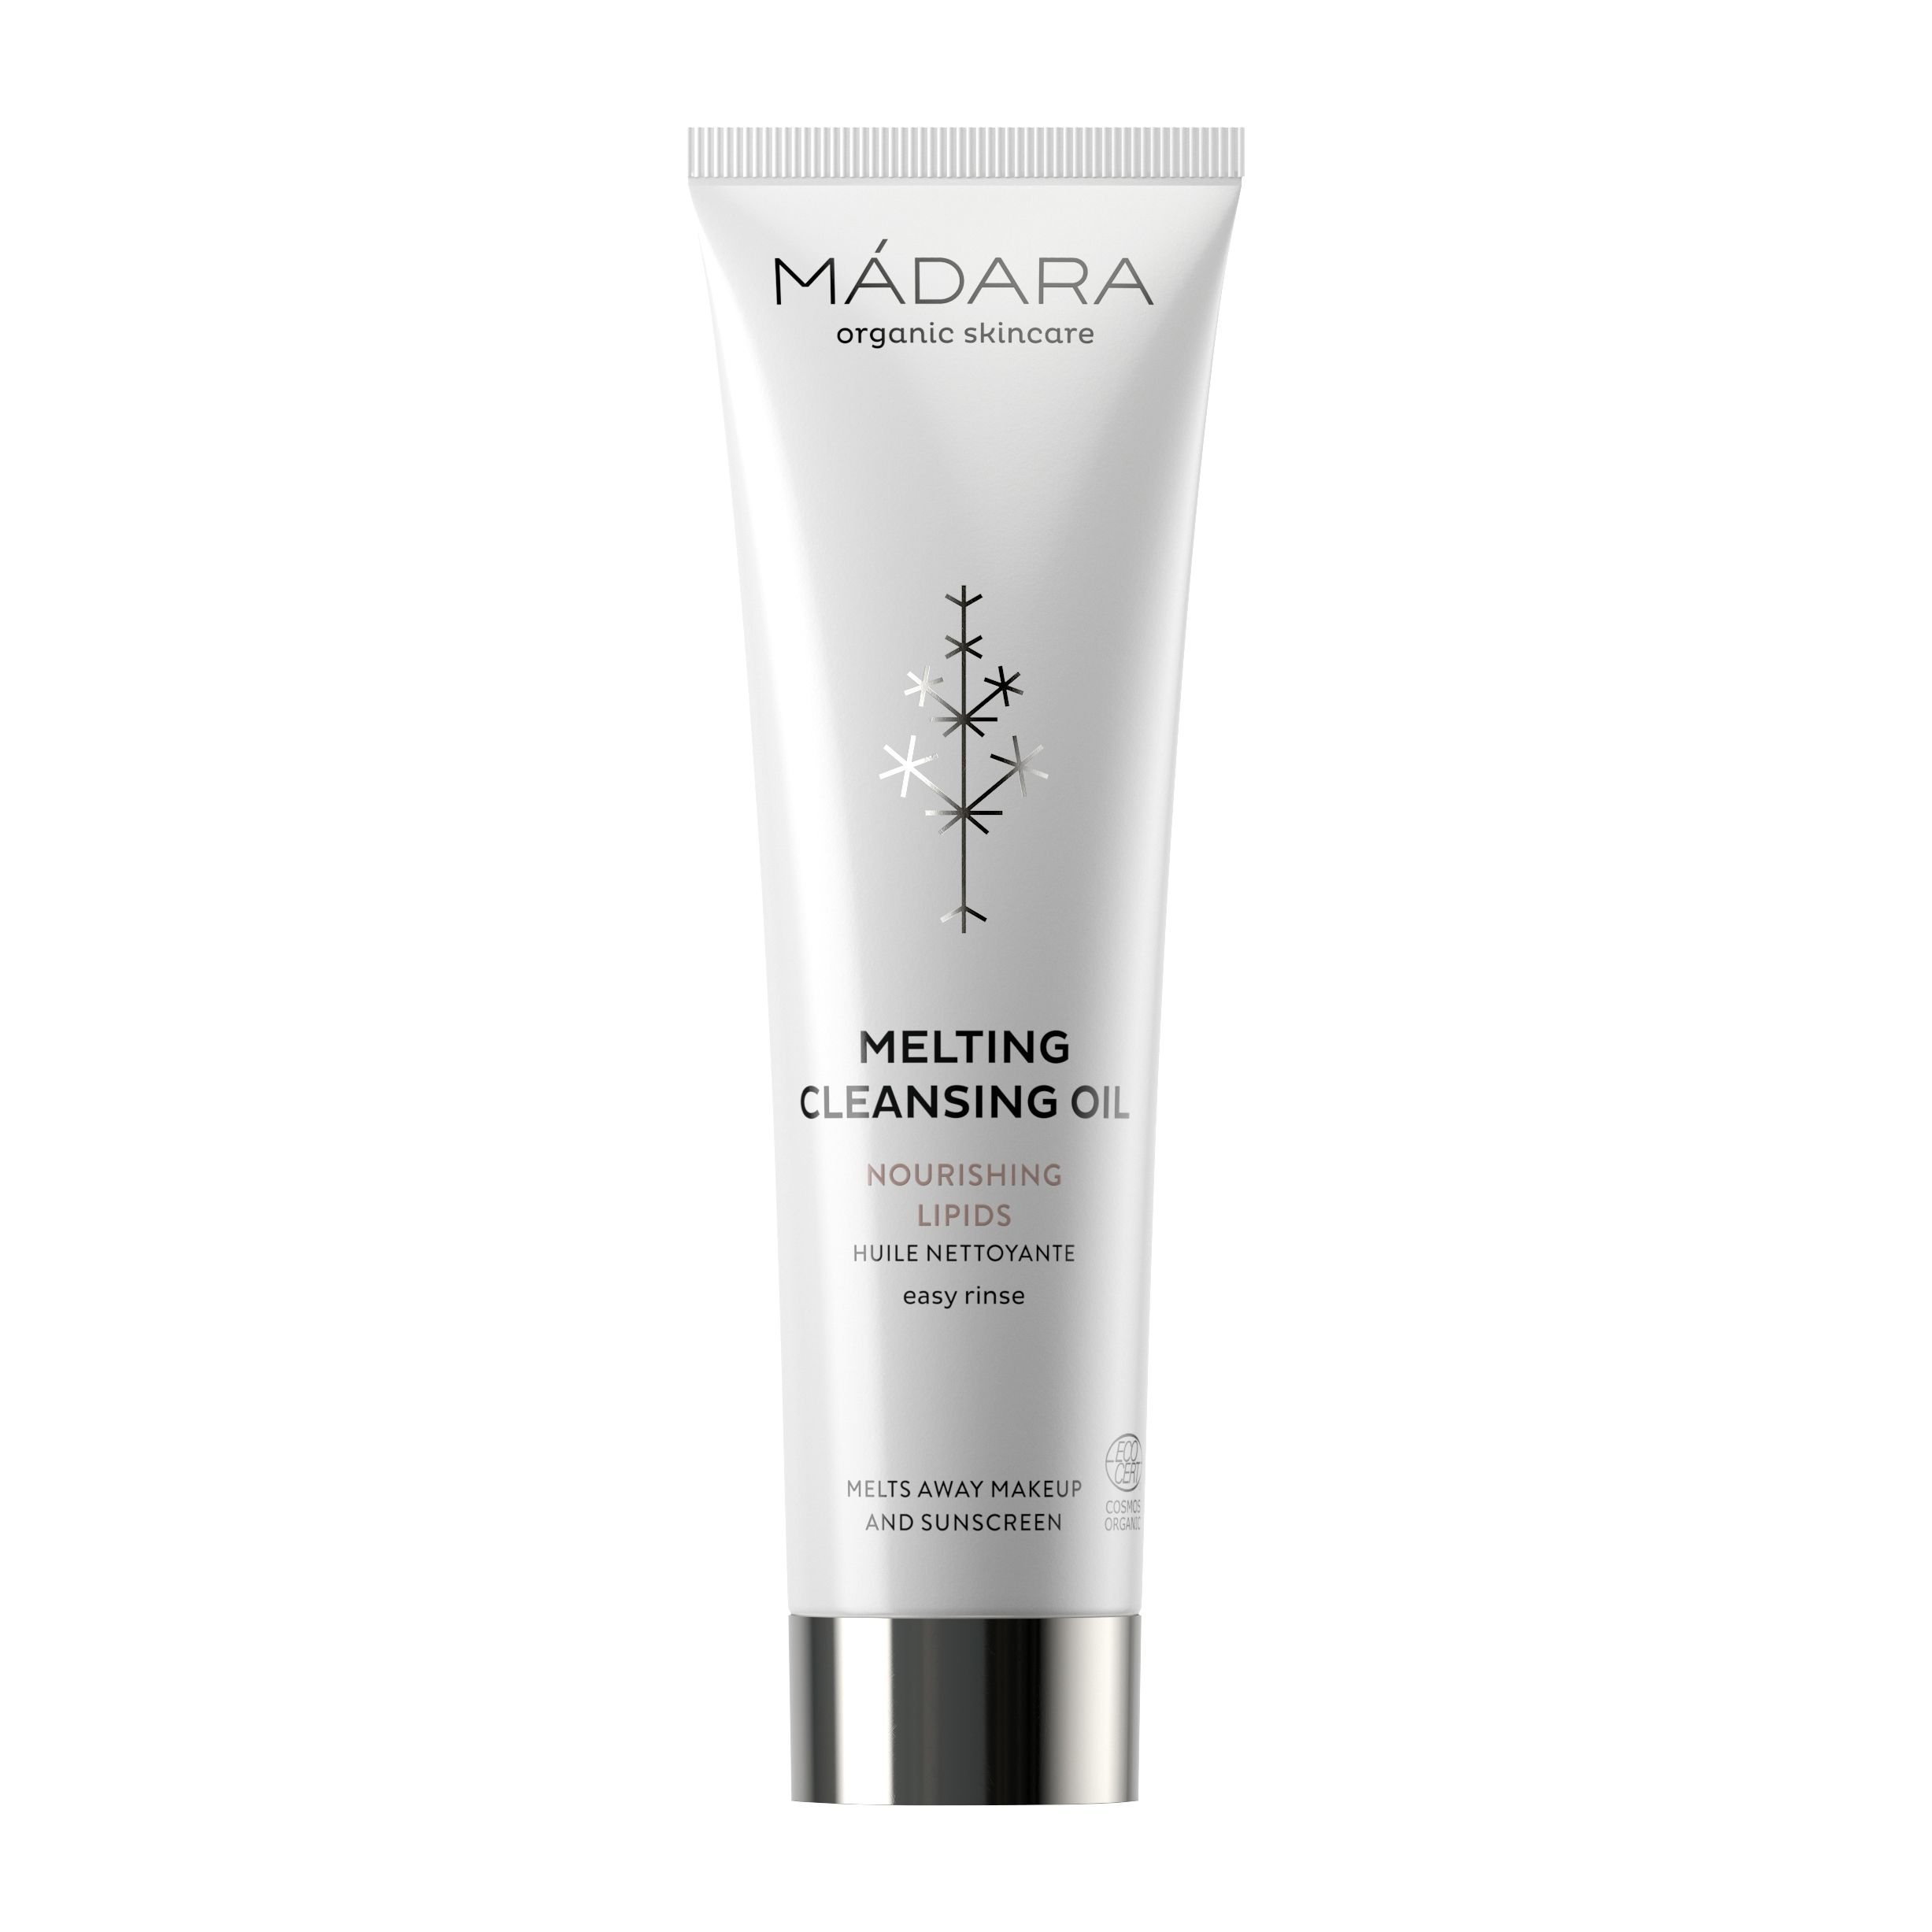 Mádara - Melting Cleansing Oil 100 ml